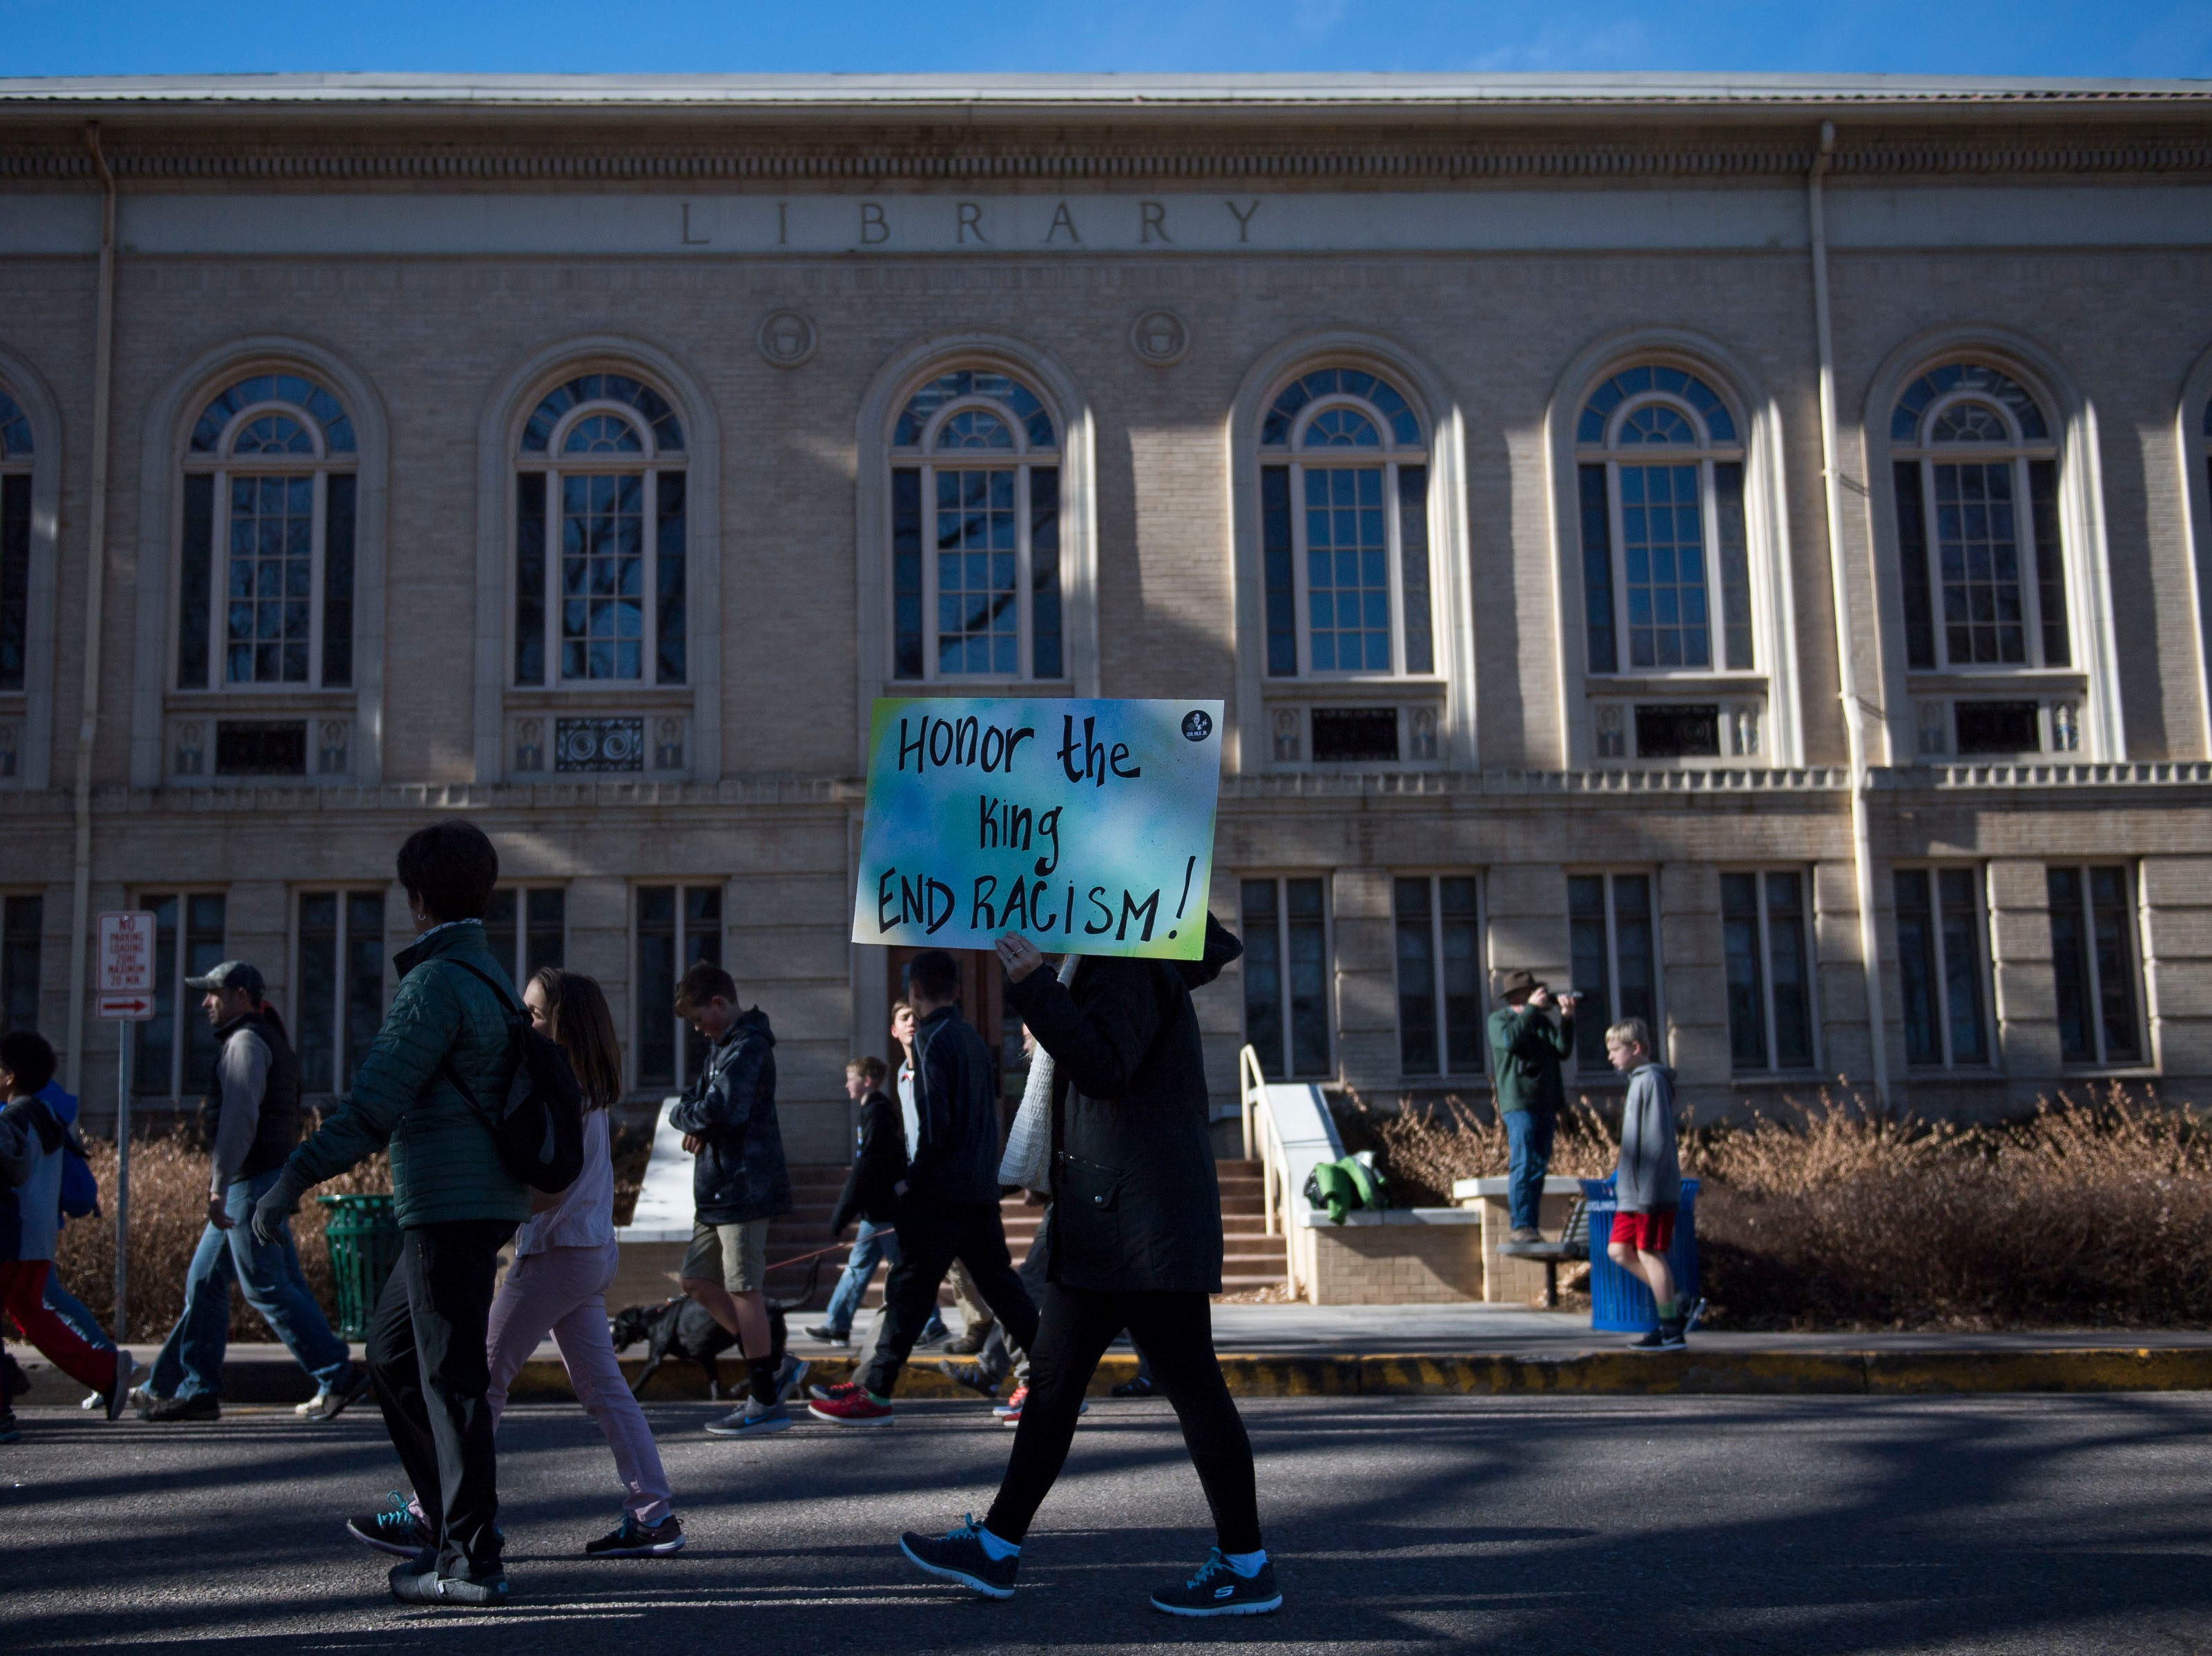 First year social work student Shannon Modec holds a sign while marching with the crowd around The Oval during the Dr. Martin Luther King, Jr. March & Celebration on Monday, Jan. 21, 2019, on the Colorado State University campus in Fort Collins, Colo.